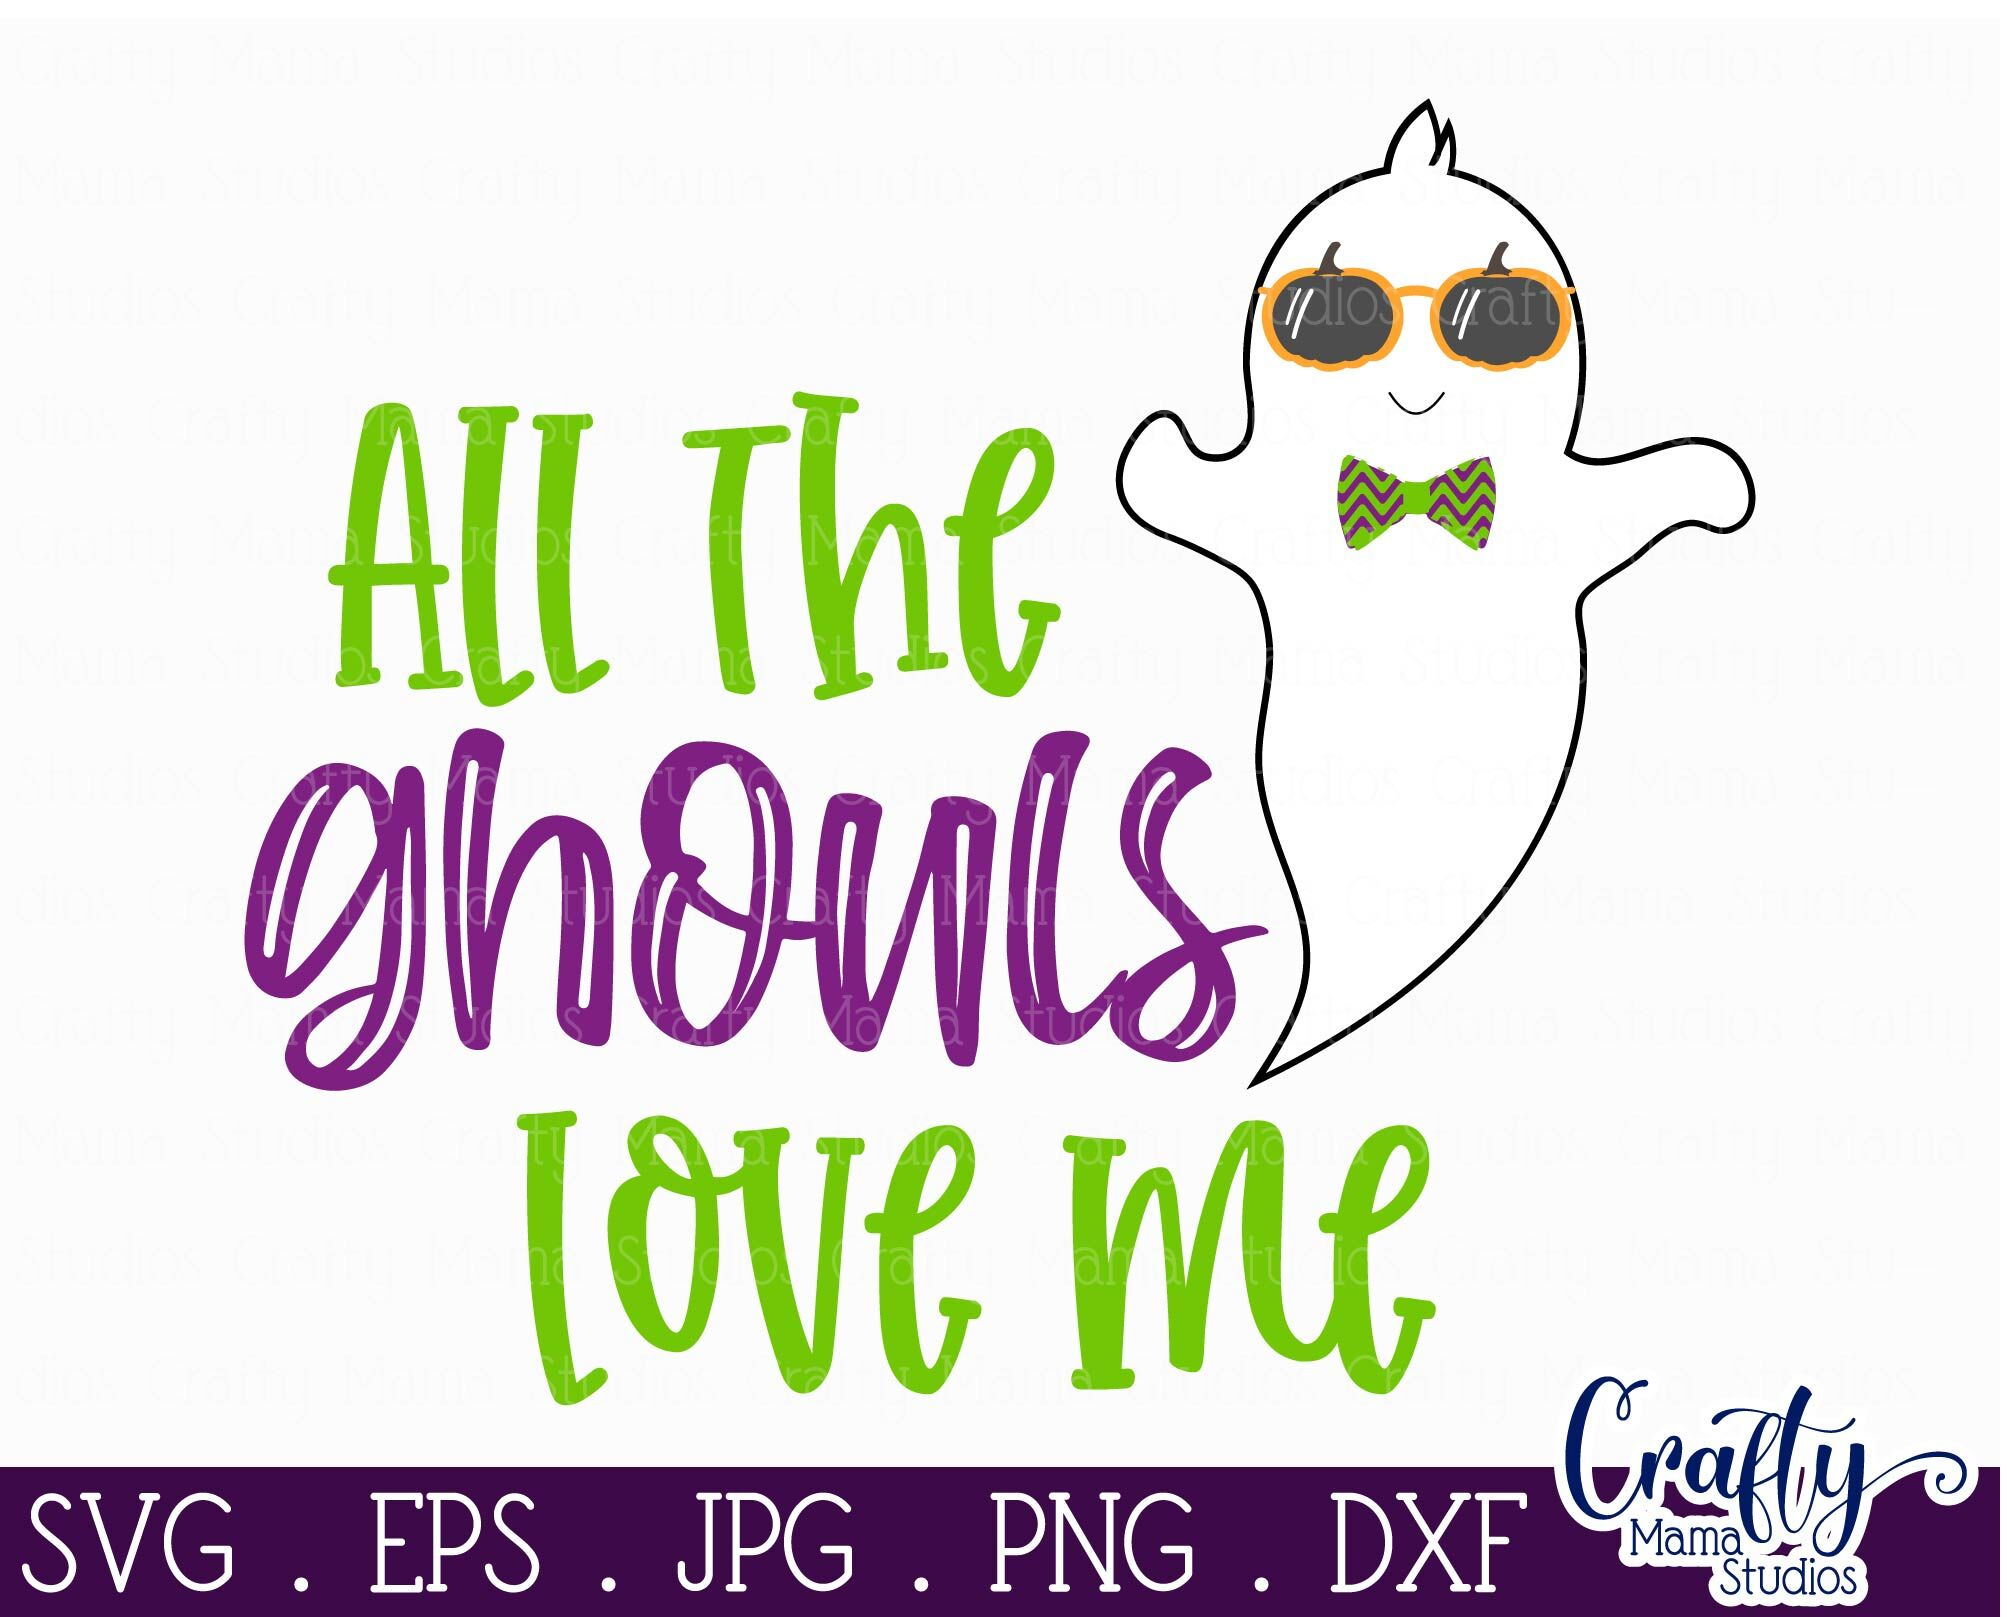 All The Ghouls Love Me Svg Halloween Svg Ghost Svg By Crafty Mama Studios Thehungryjpeg Com